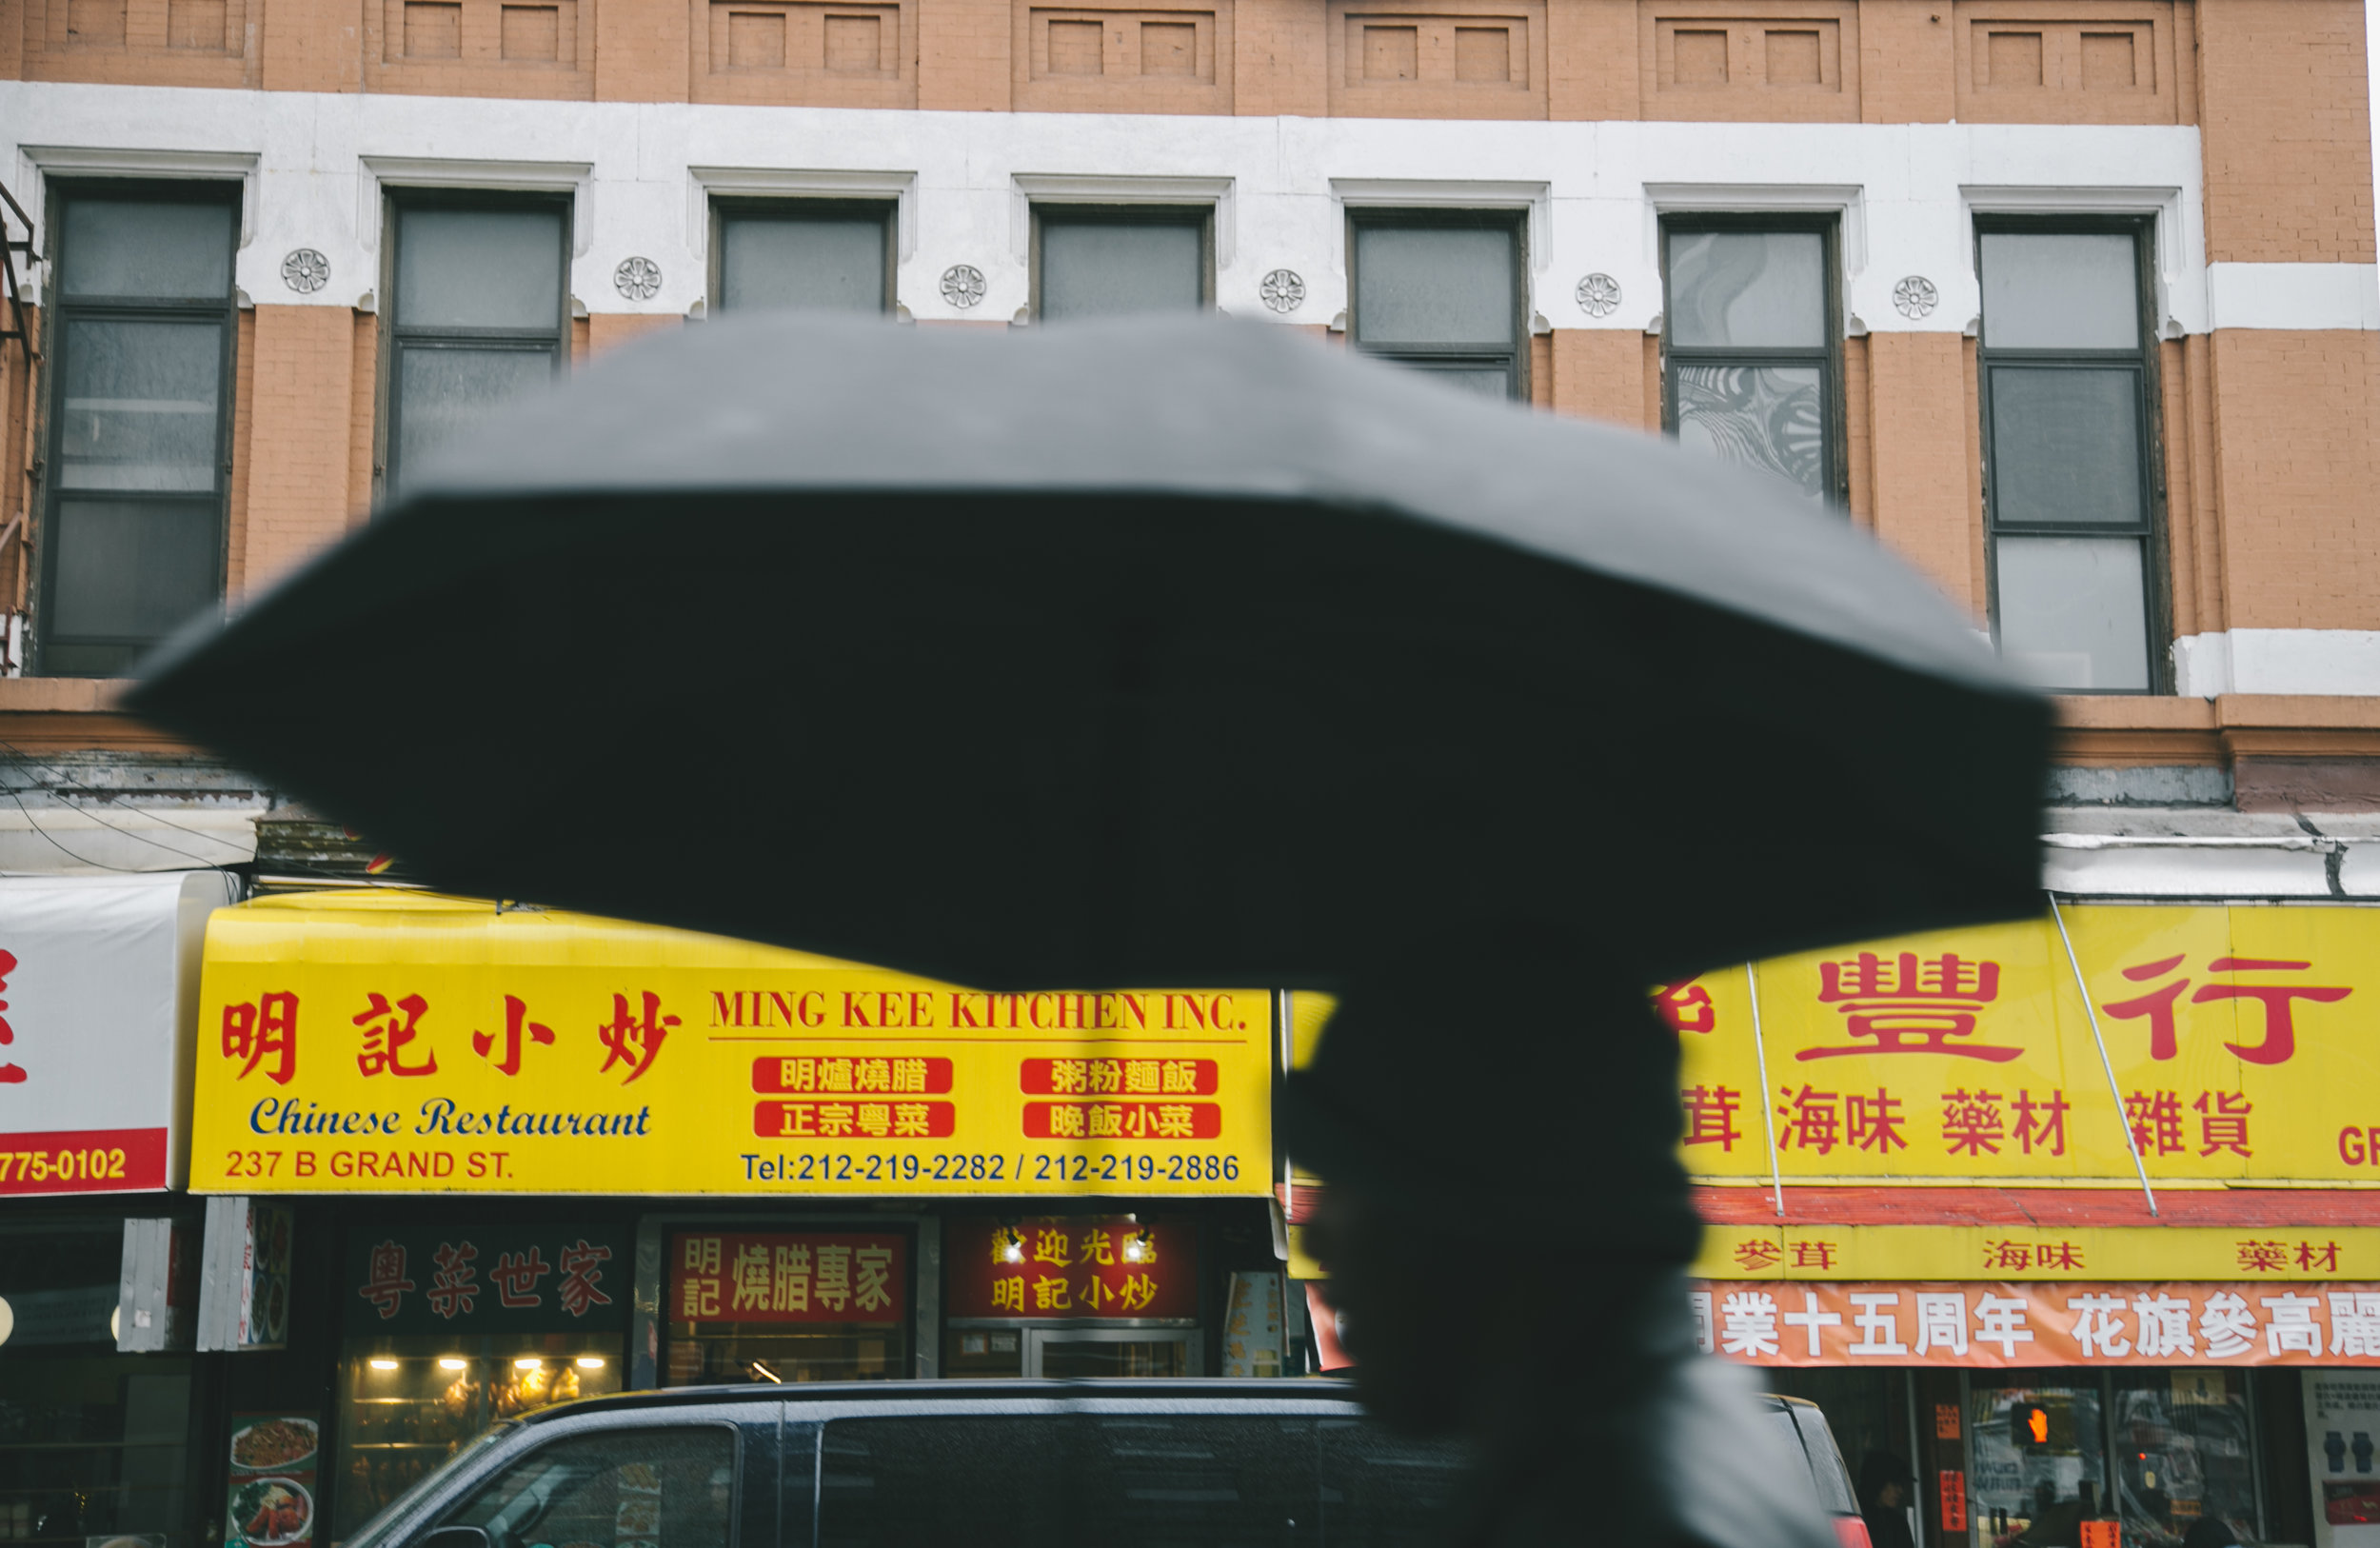 voyage-a-new-york-chinatown-street-photo-onmyway.jpg